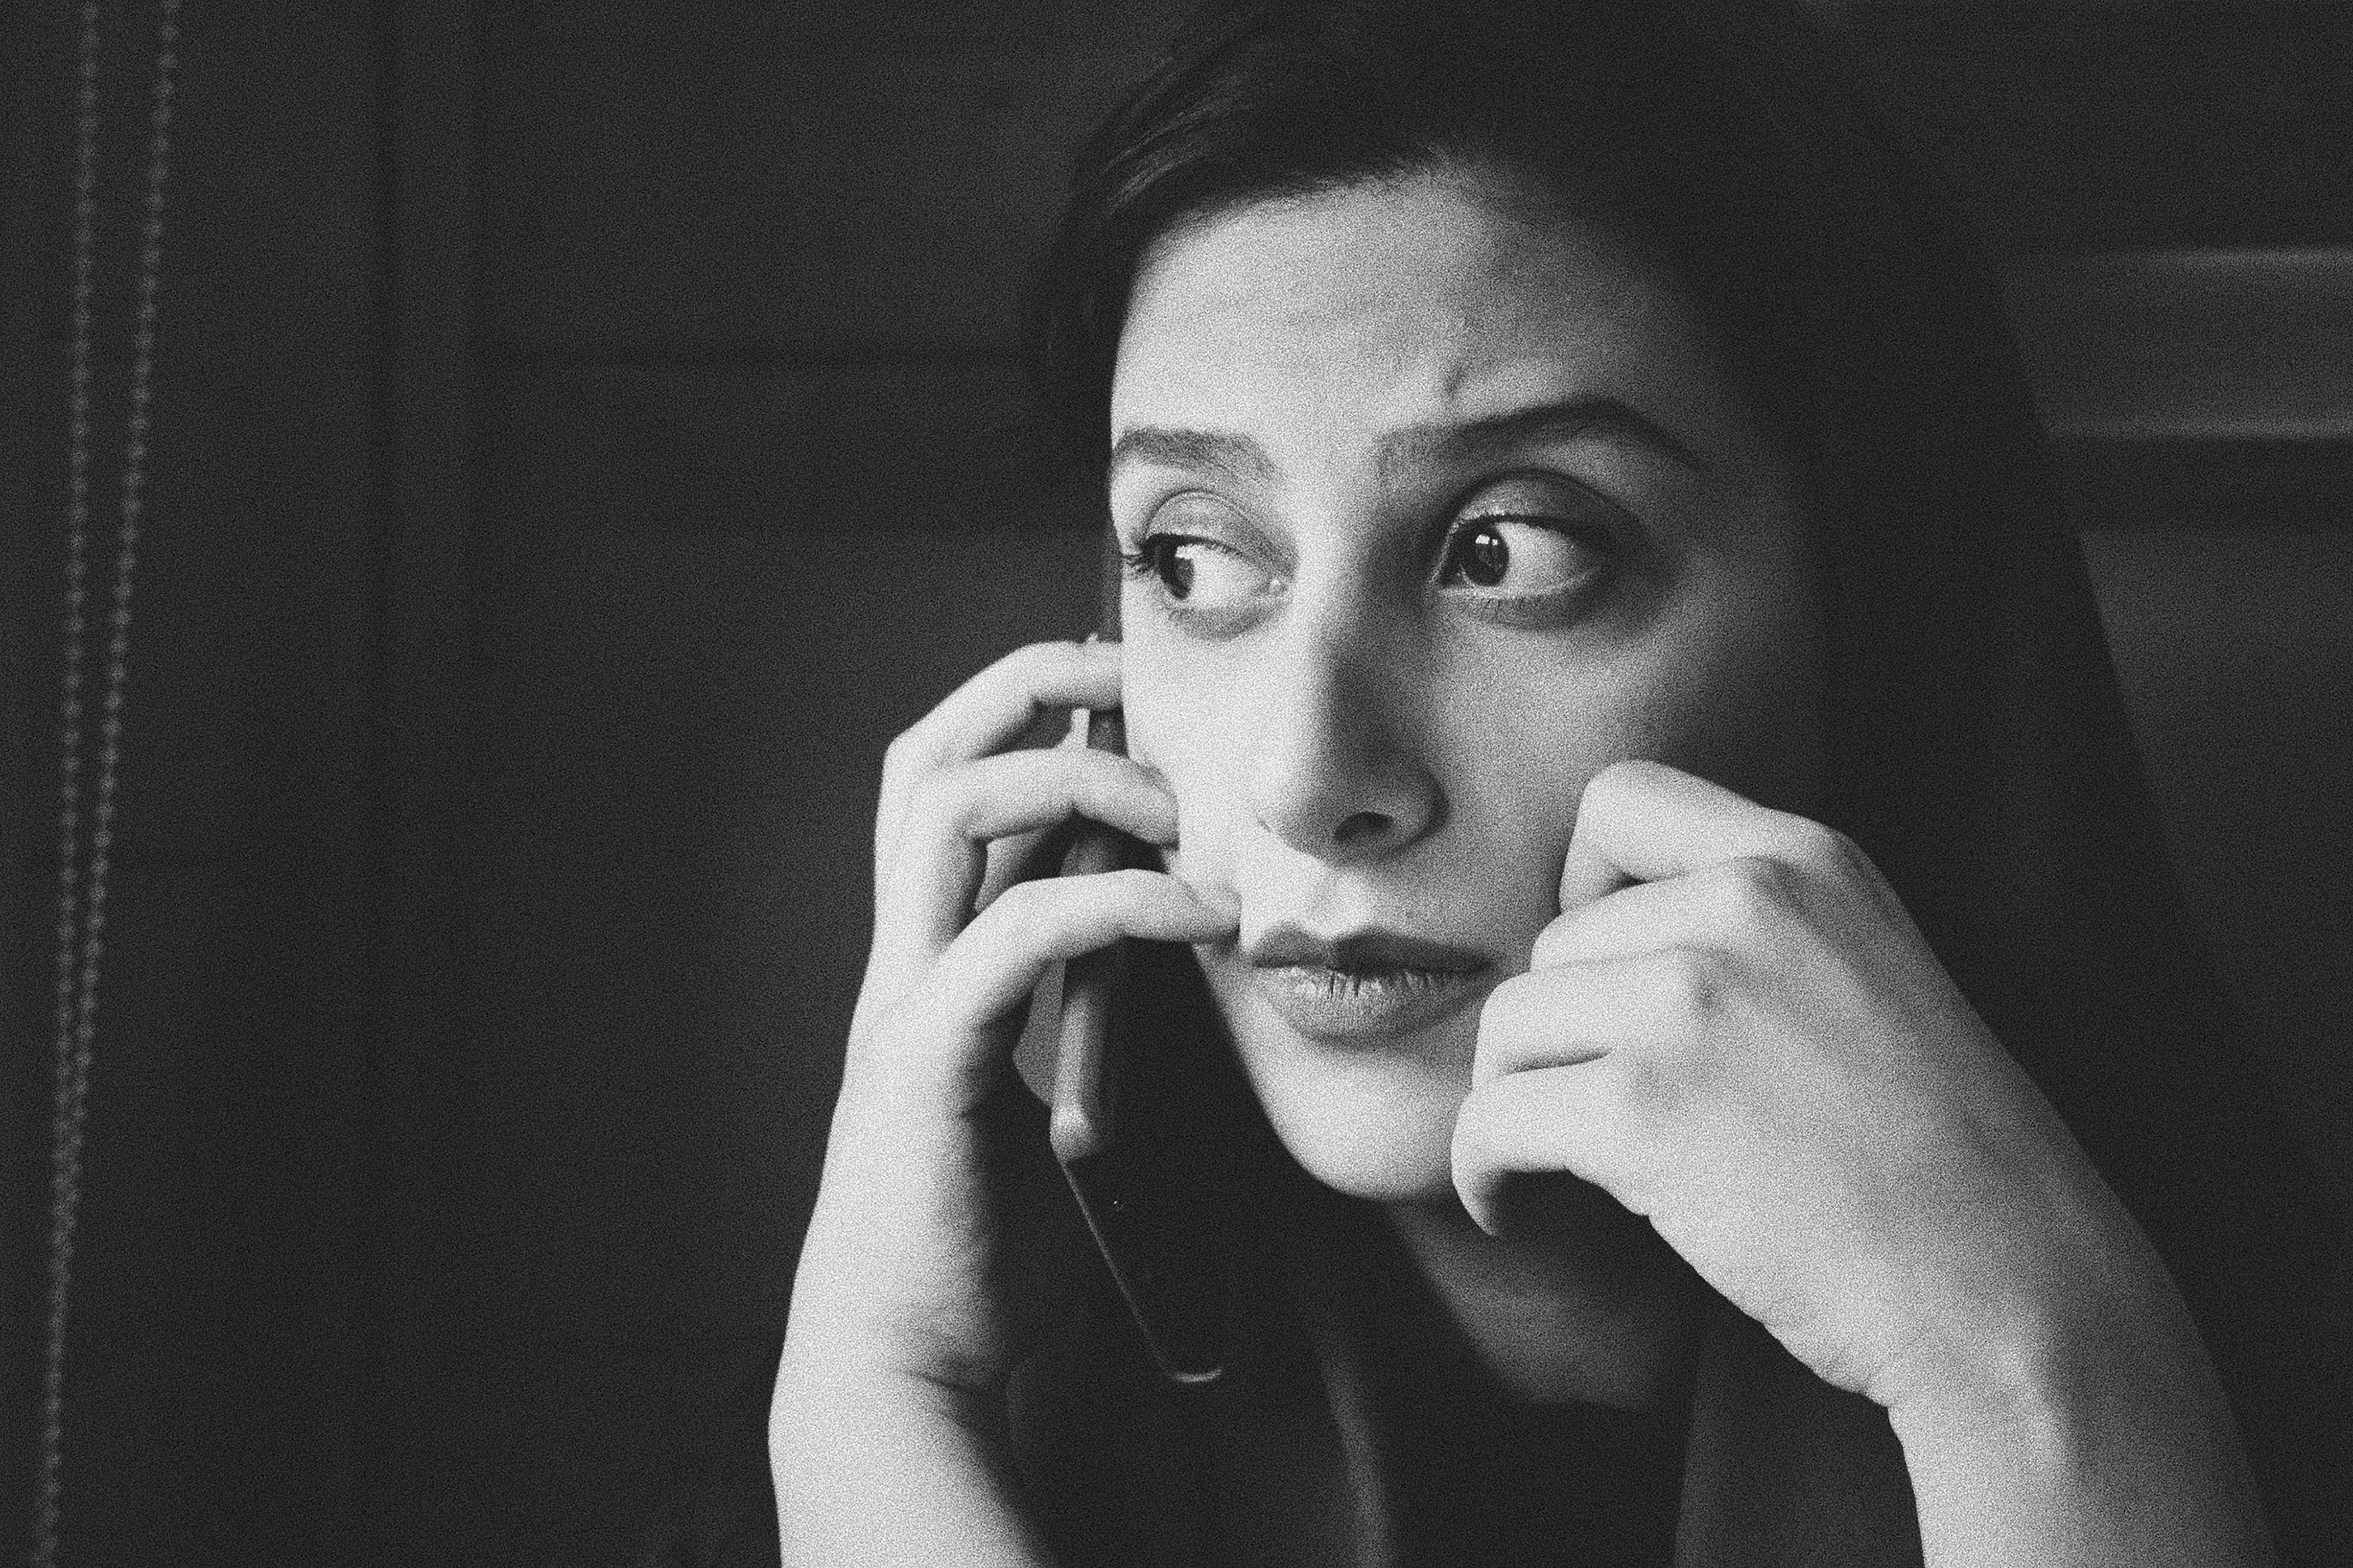 Greyscale photo of woman on a phone call; image by Siavash Ghanbari, via Unsplash.com.